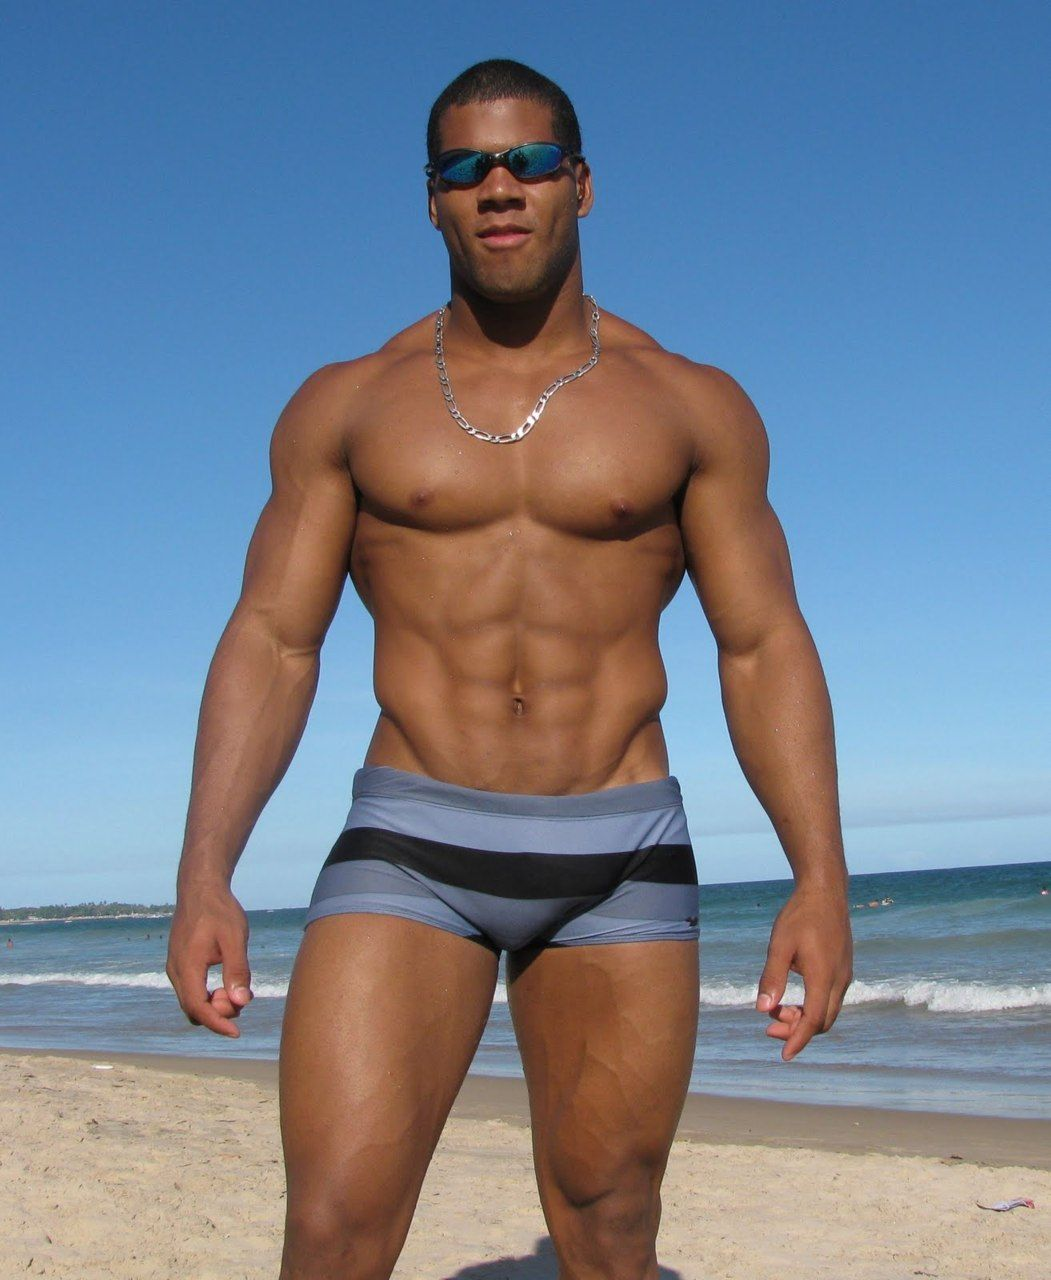 Black man naked on beach muscles — photo 5